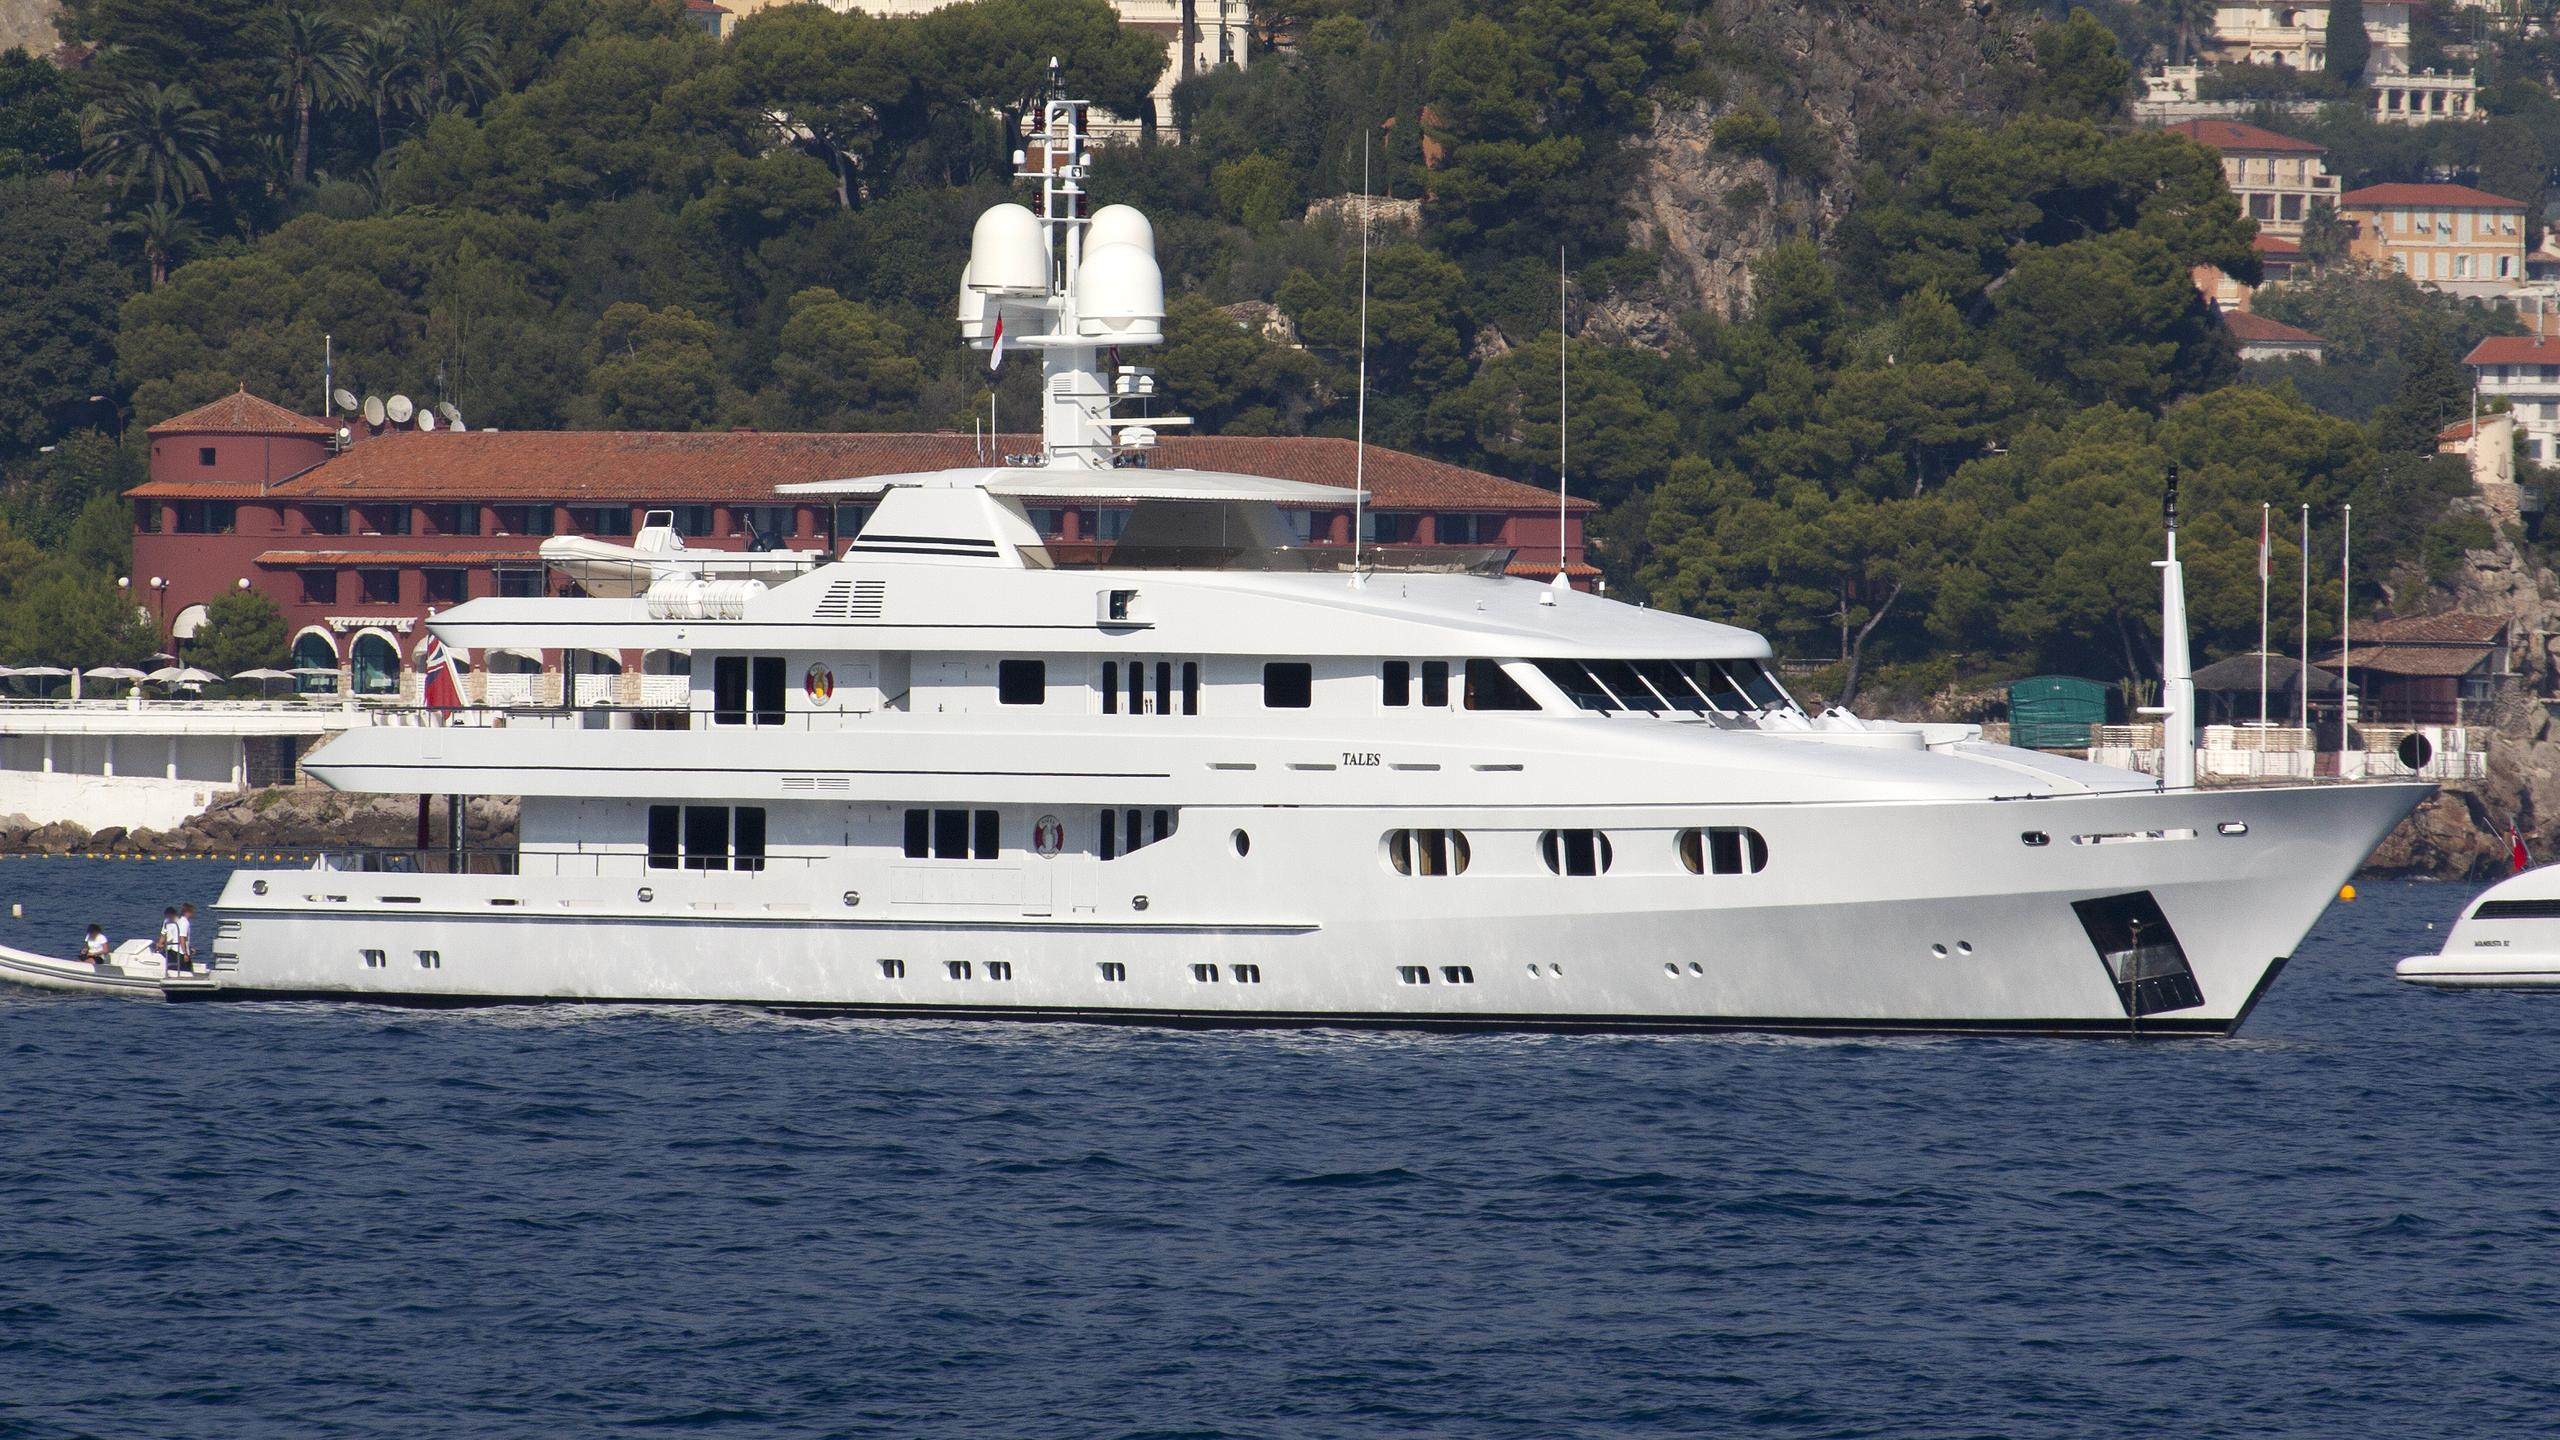 tales-yacht-exterior